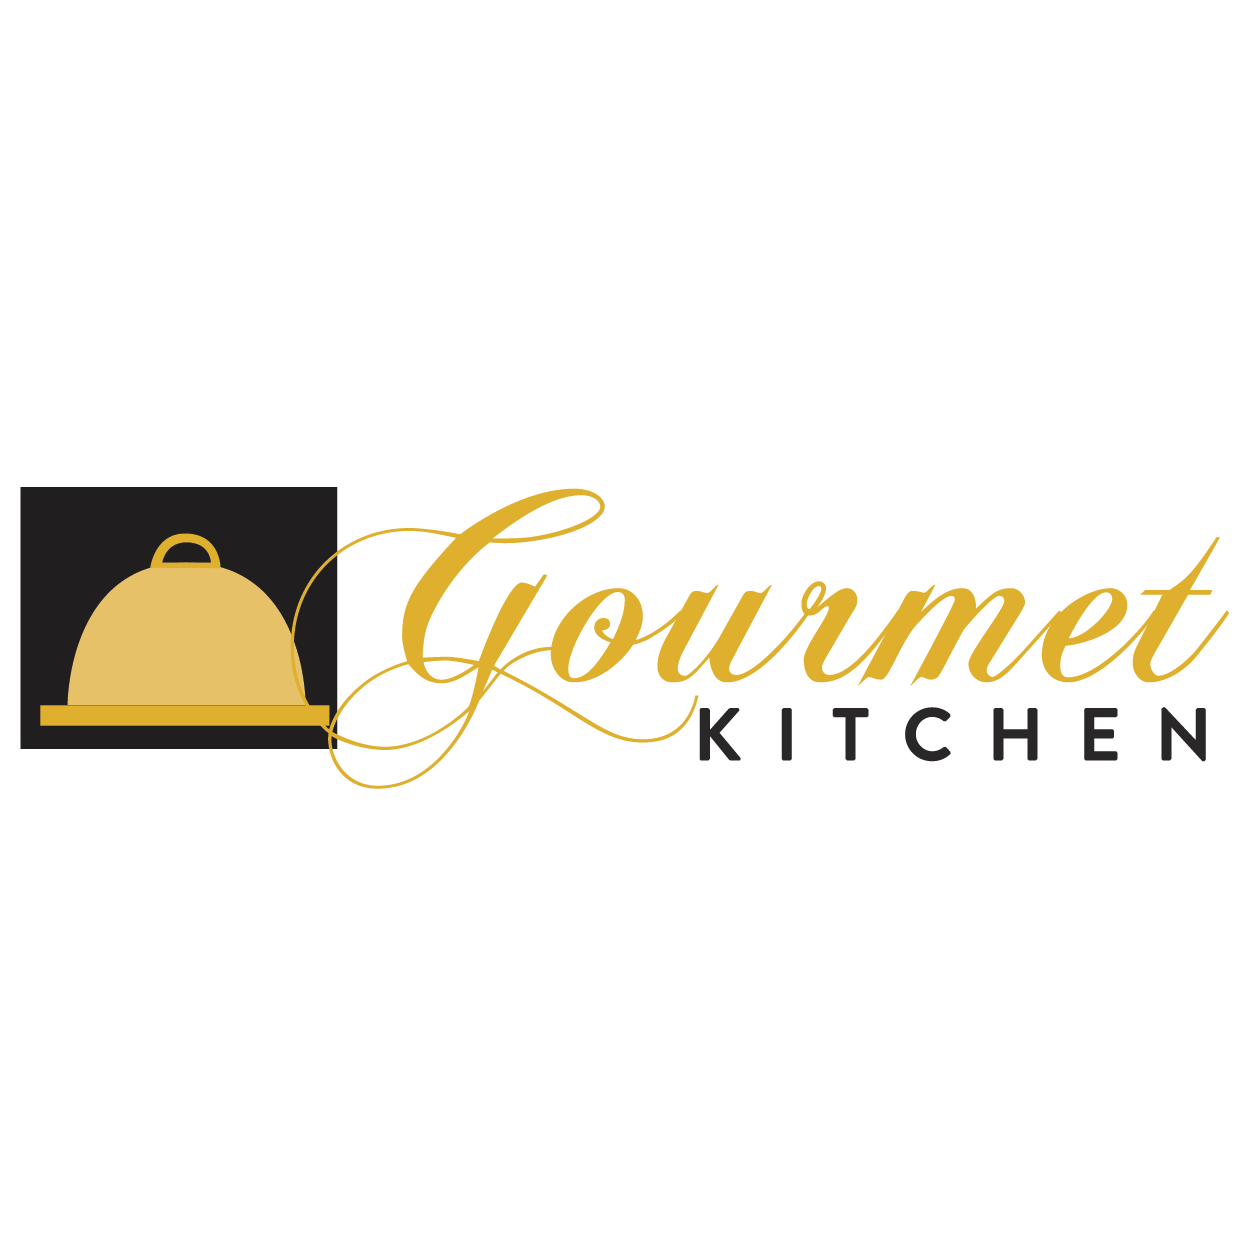 Gourmet Kitchen-01.png